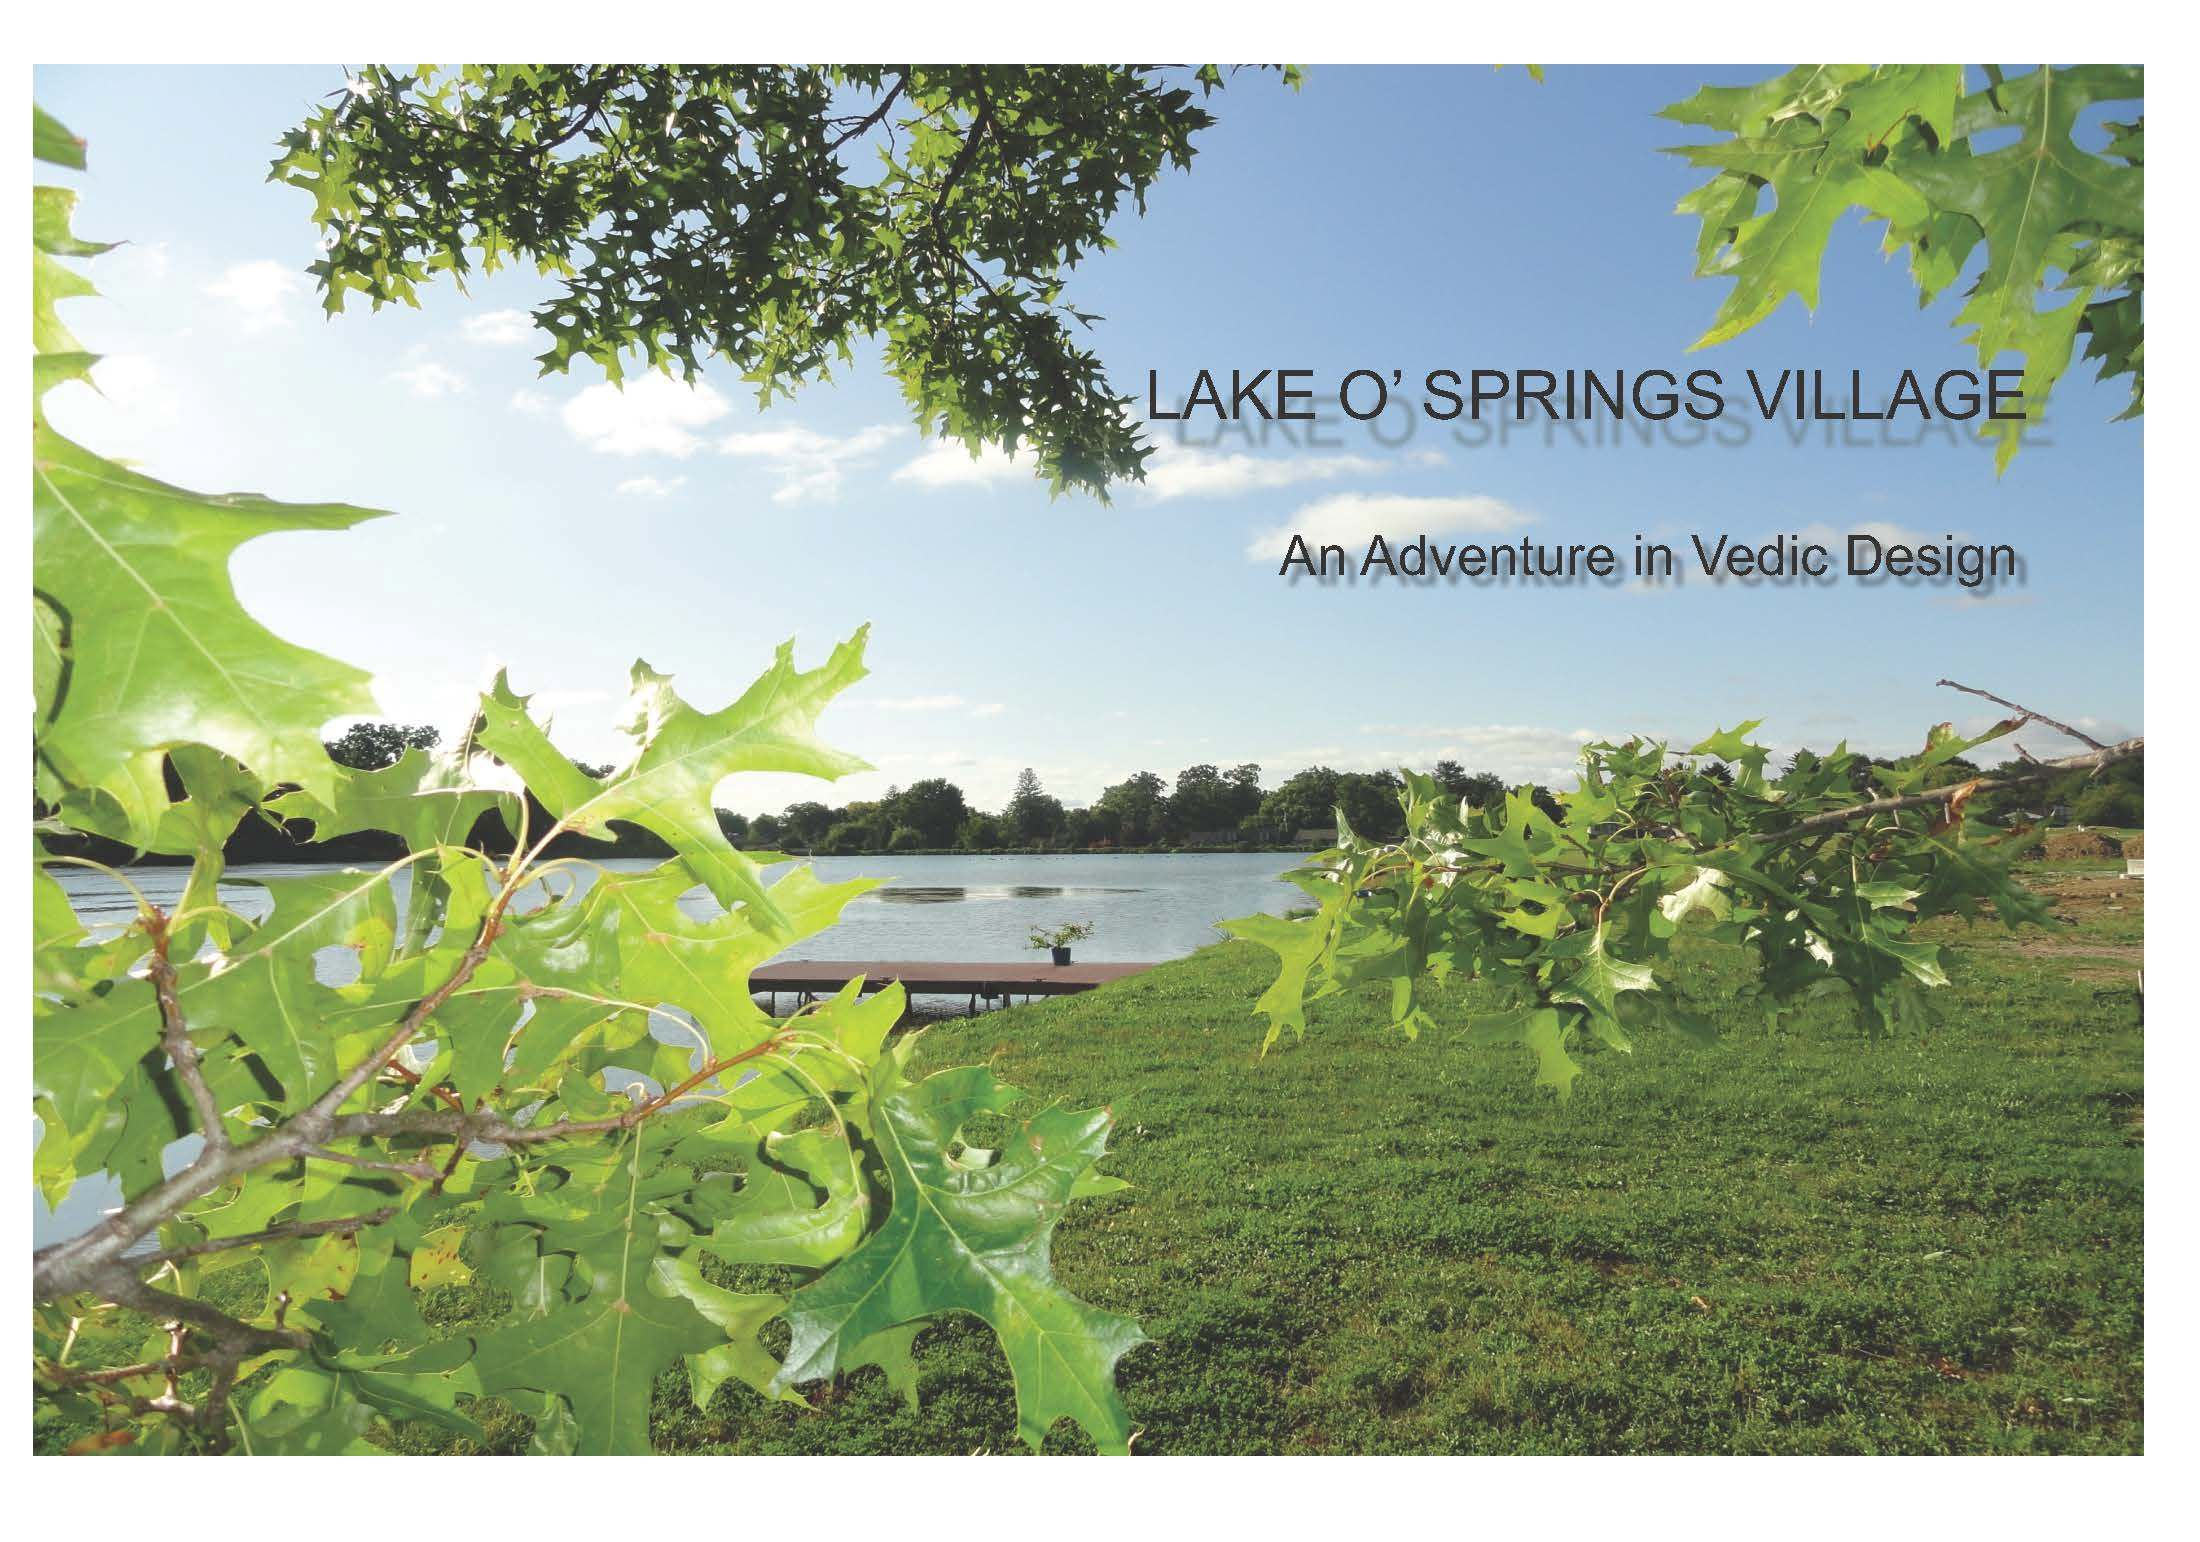 Lake O' Springs Village